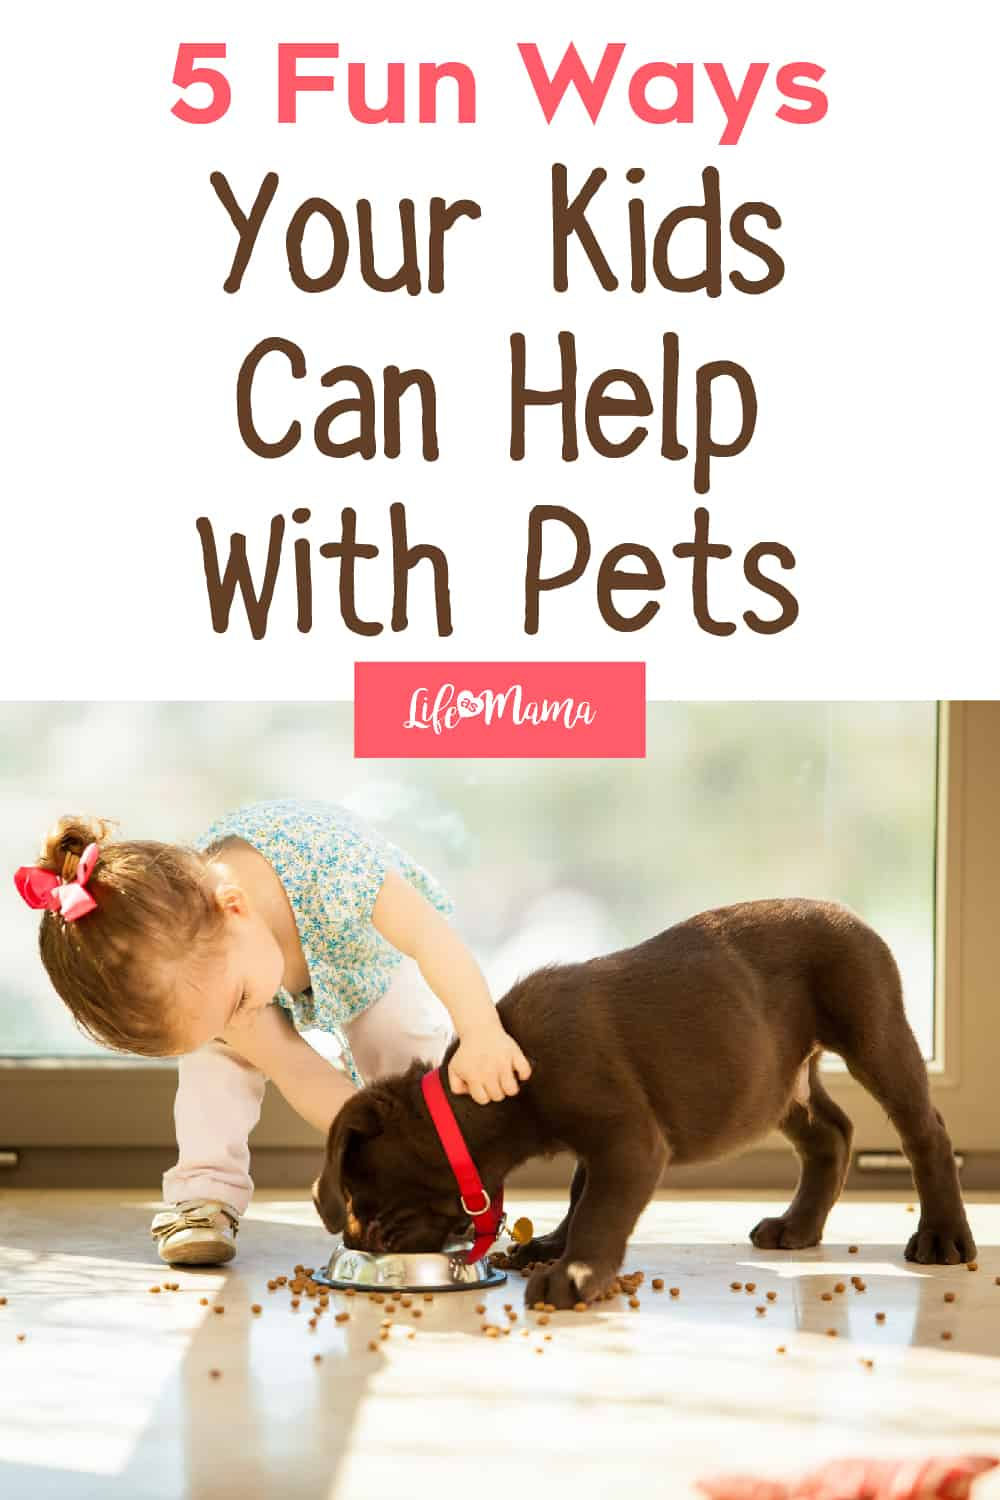 5 Fun Ways Your Kids Can Help With Pets-03-01